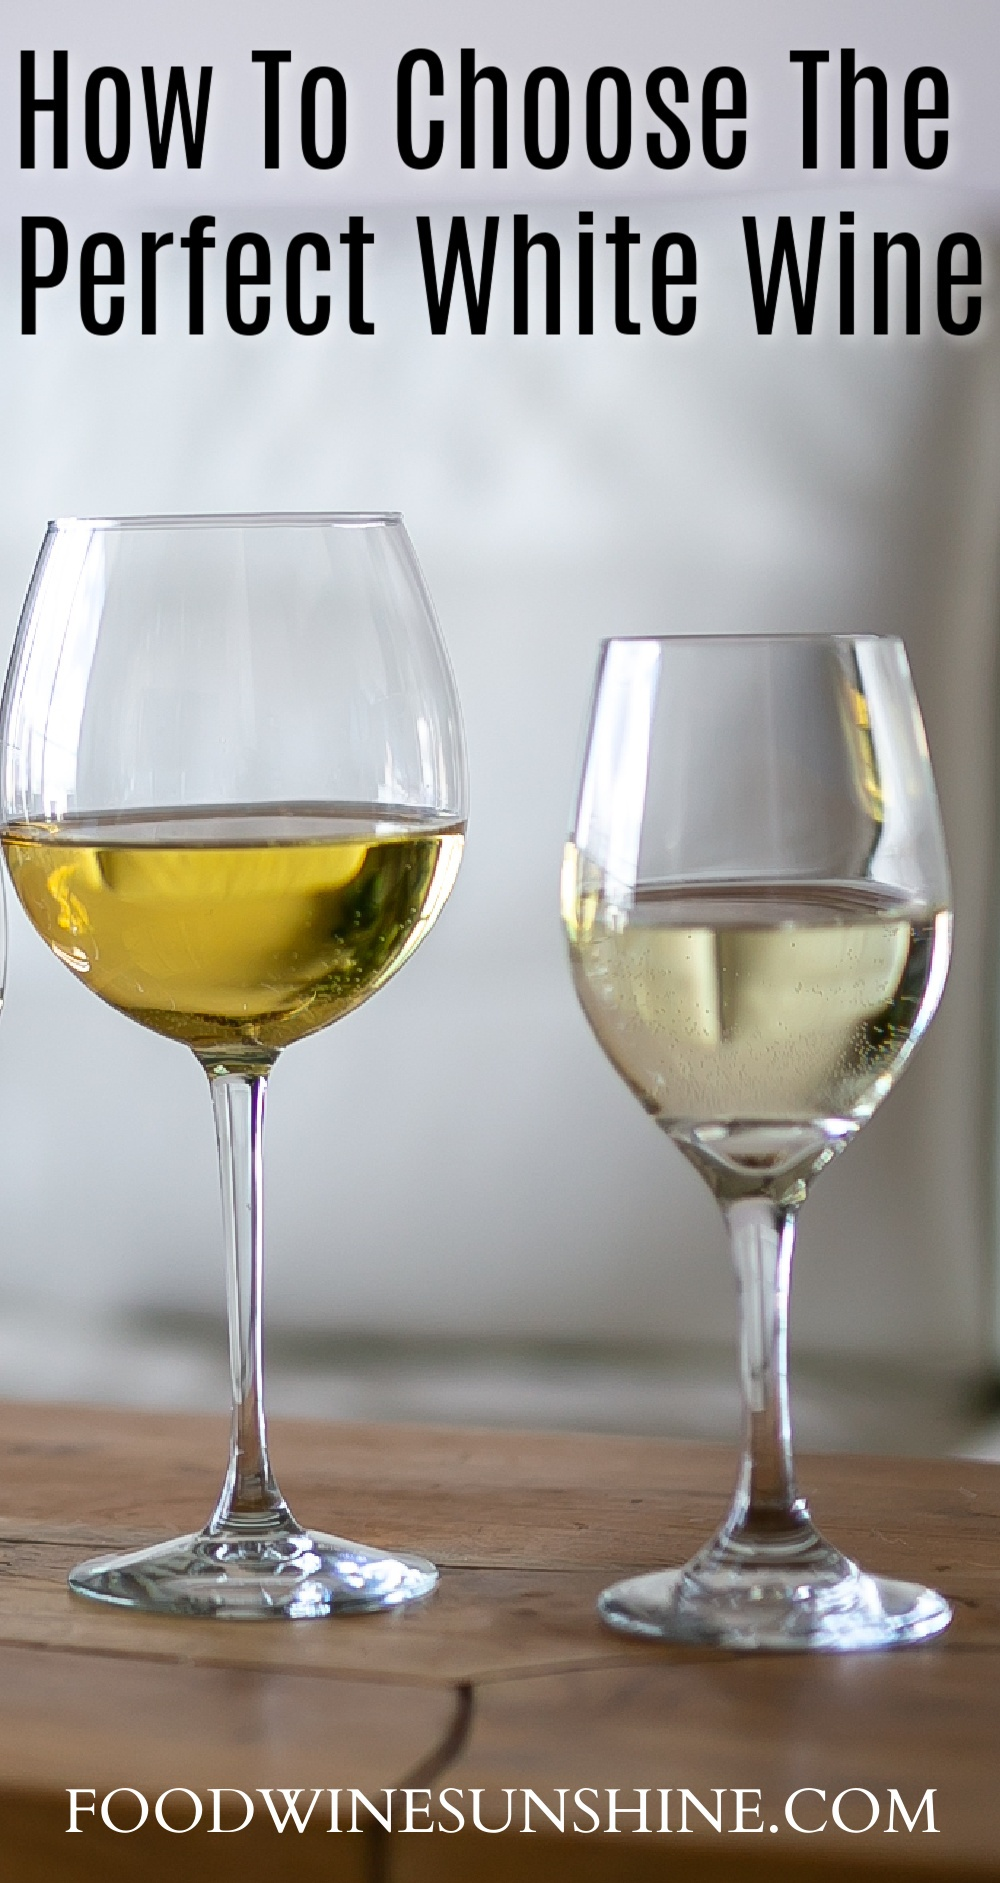 How To Choose The Perfect White Wine